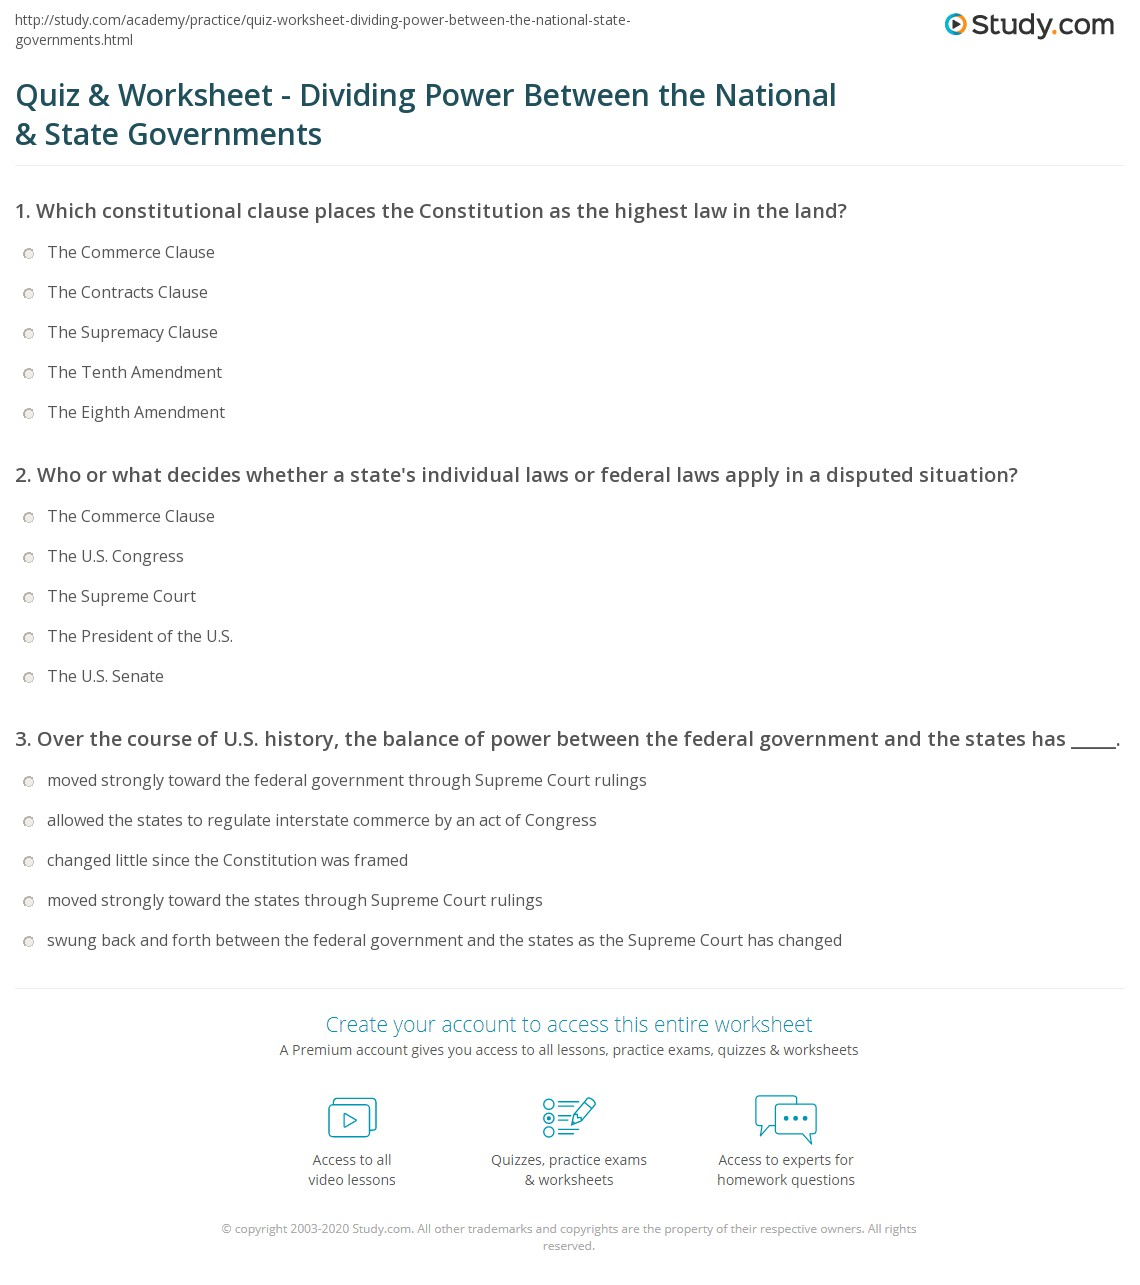 Quiz & Worksheet - Dividing Power Between the National & State ...